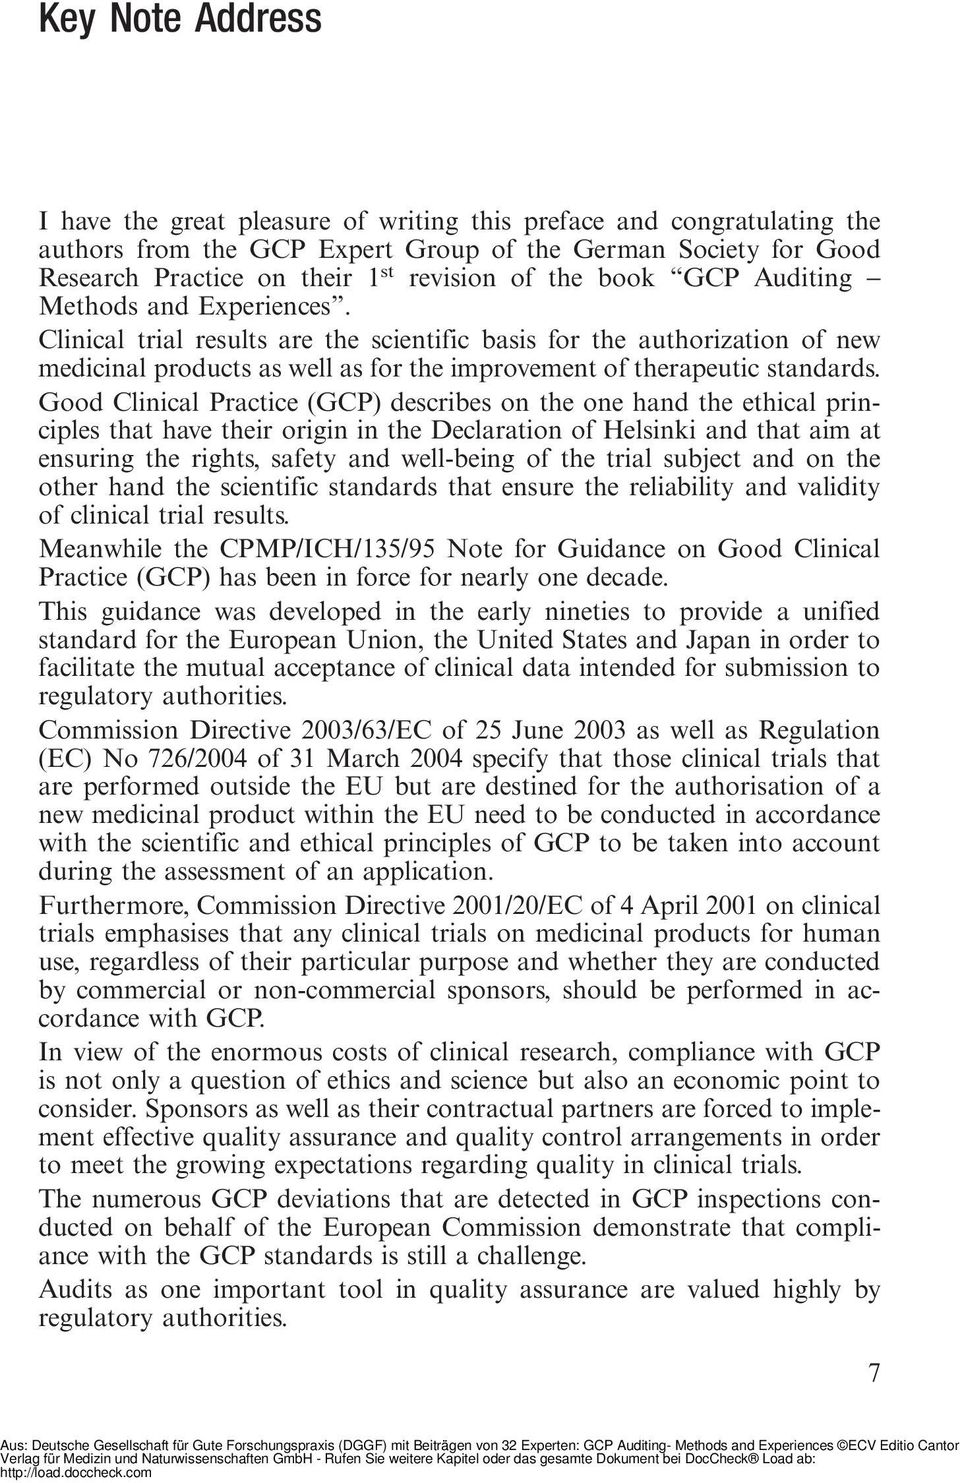 Good Clinical Practice (GCP) describes on the one hand the ethical principles that have their origin in the Declaration of Helsinki and that aim at ensuring the rights, safety and well-being of the